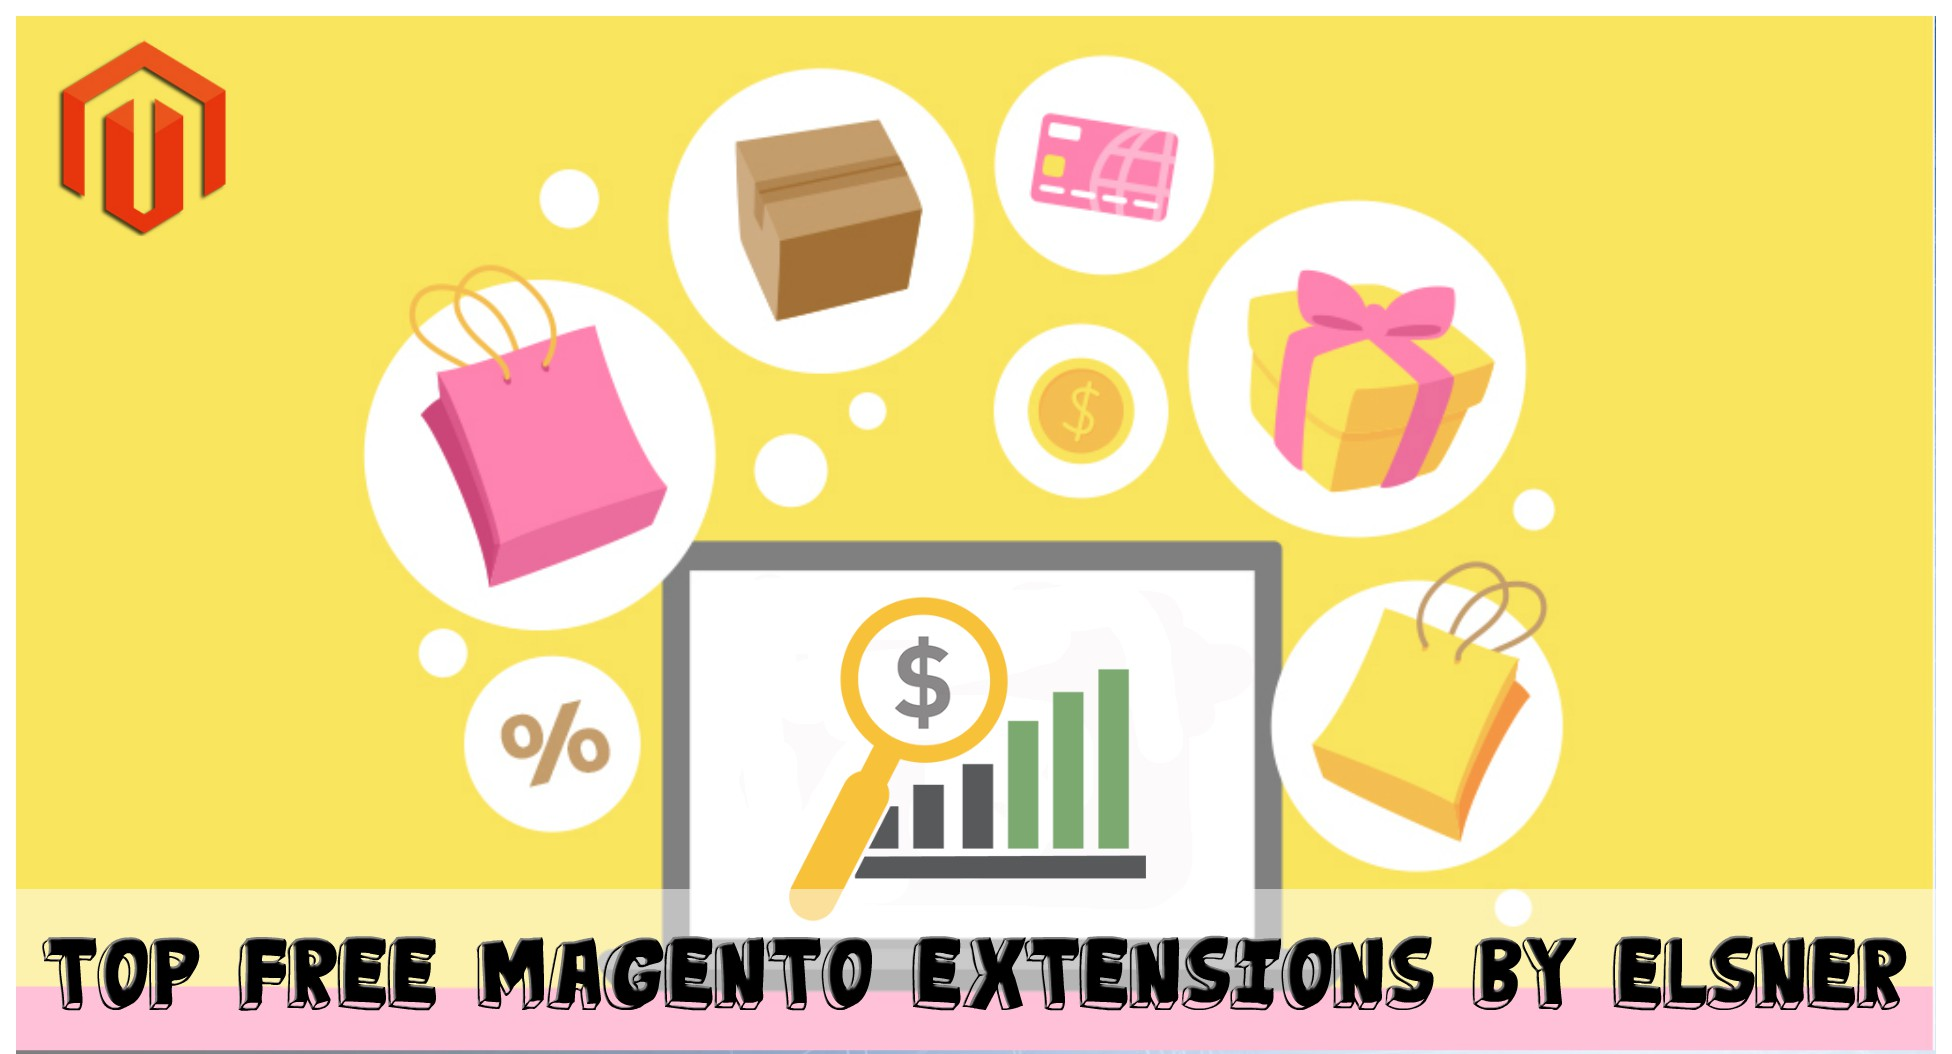 Top Free Magento Extensions by Elsner